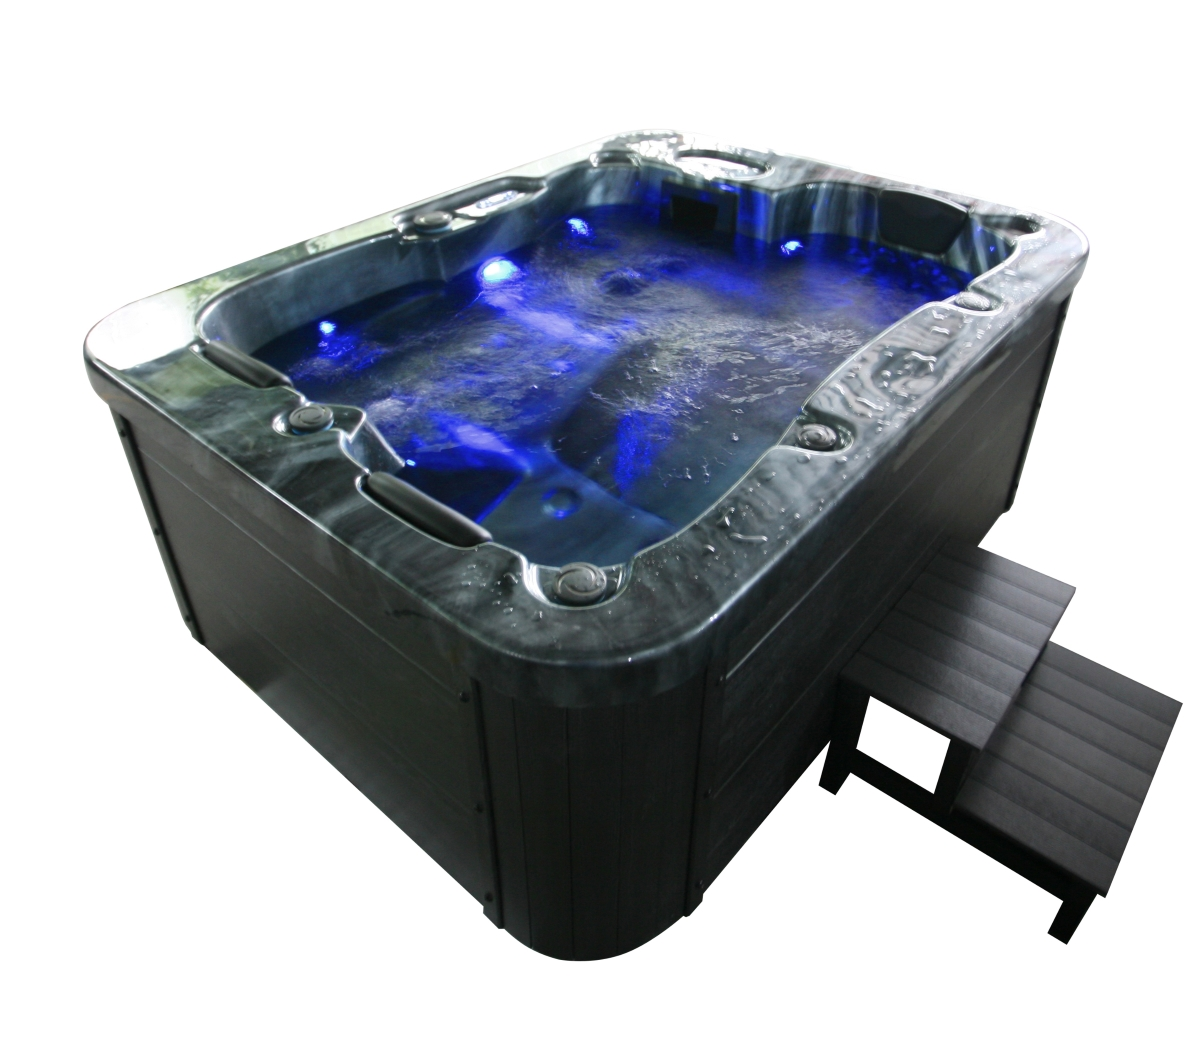 Outdoor Whirlpool Cheap Outdoor Whirlpool Spa Berlin 210x160 Cm Black With 27 Massage Jets Heating Ozone Disinfection For 3 Persons